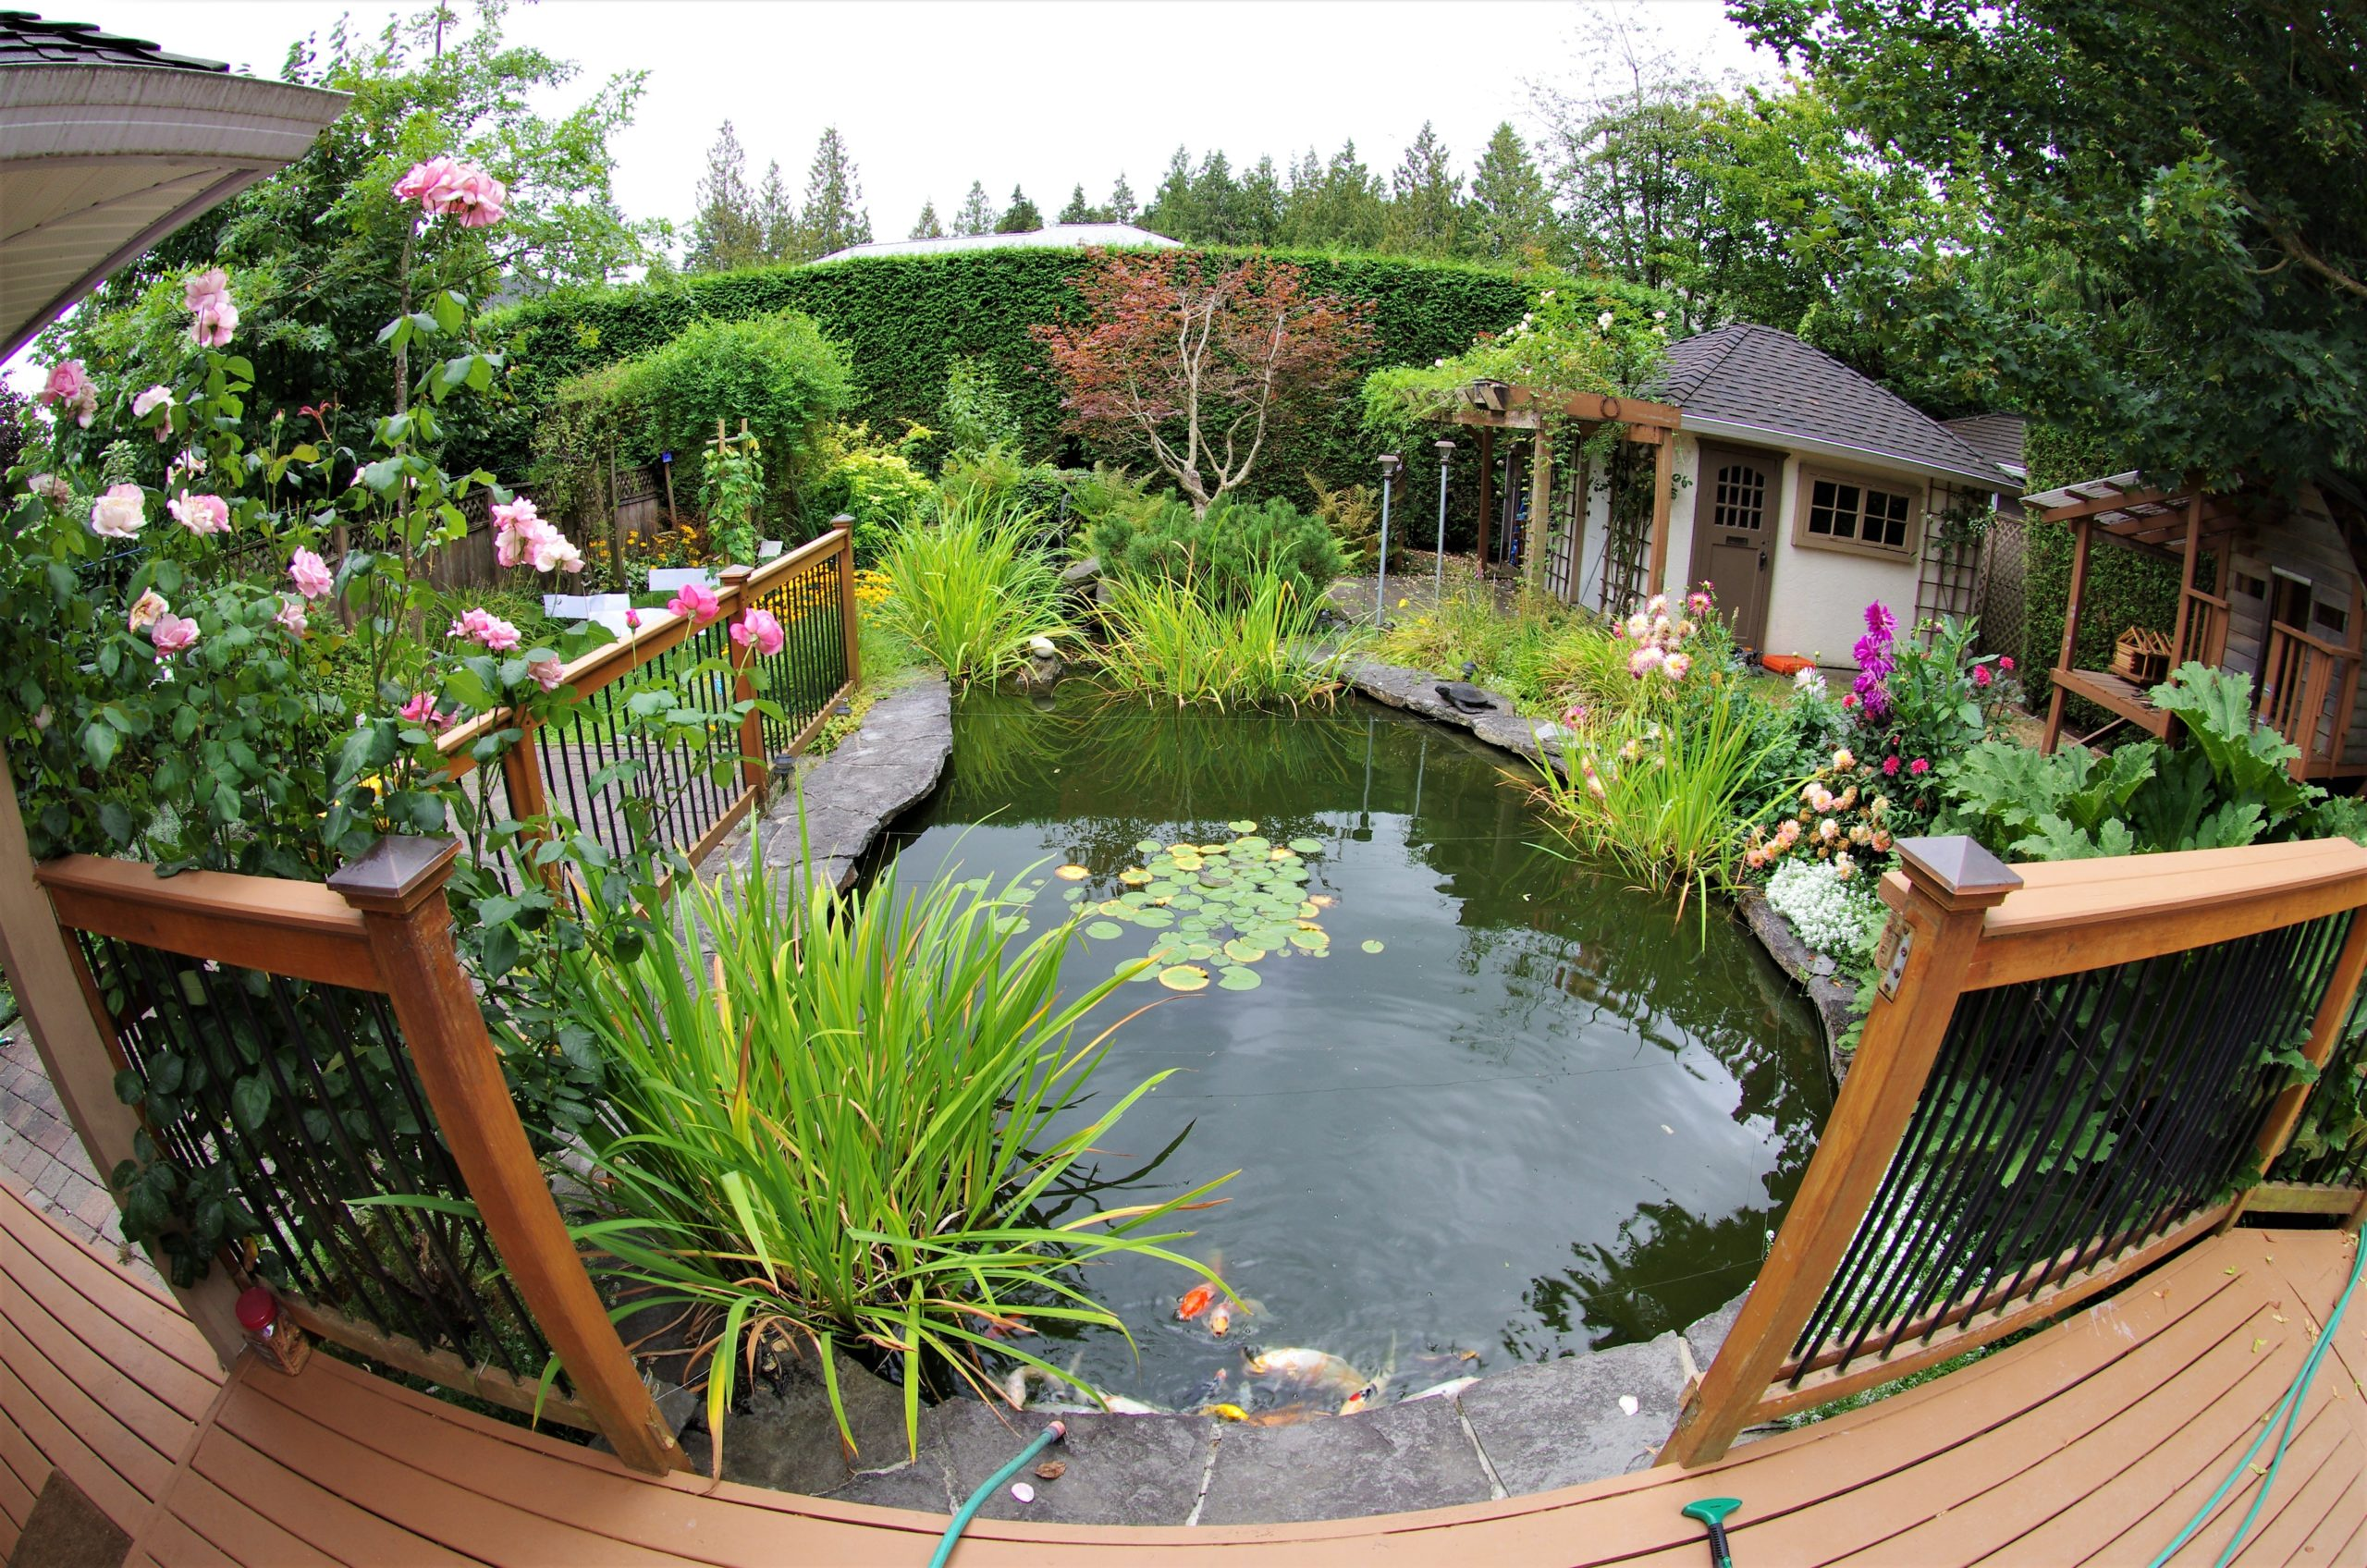 calm water of pond surrounded by plants and flowers